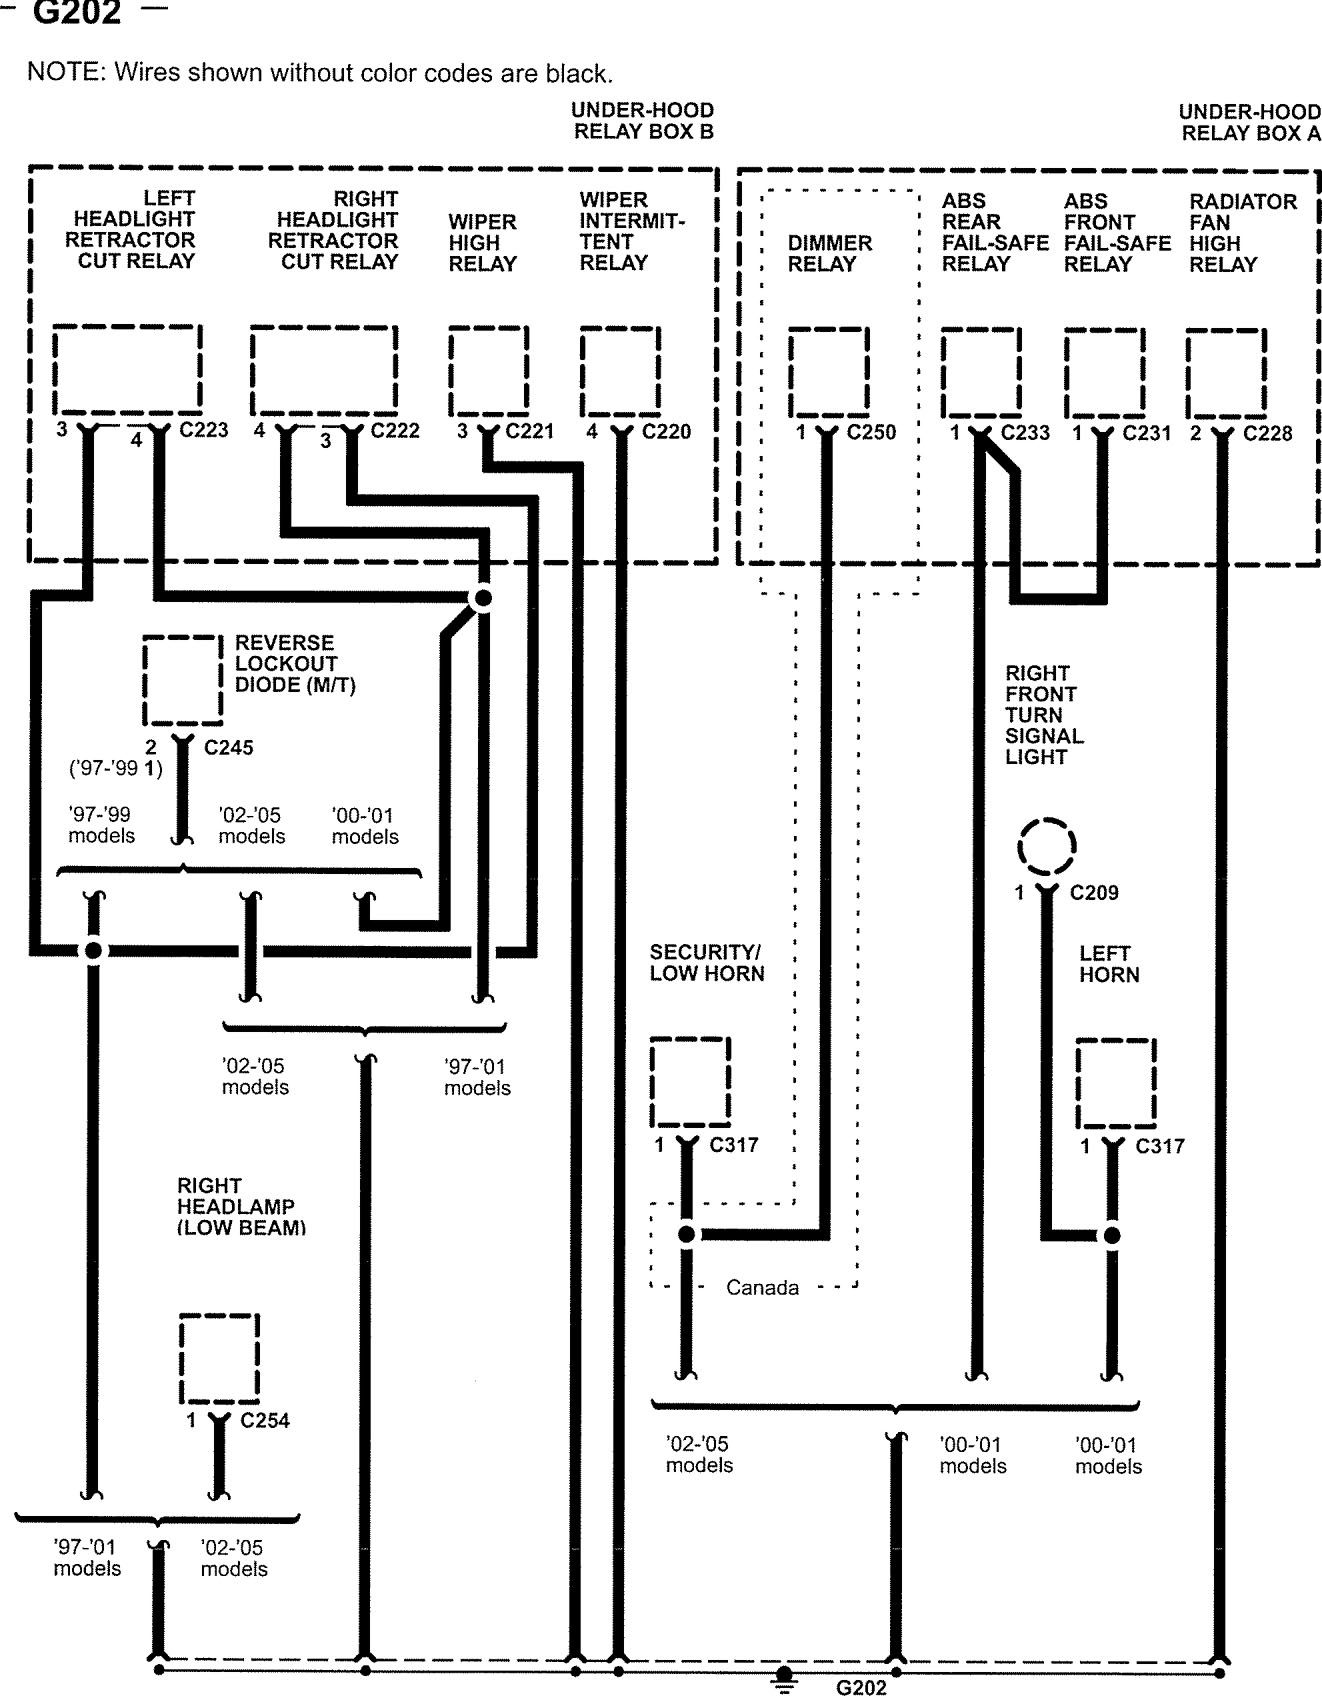 Acura NSX (2005) - wiring diagrams - ground distribution ... on